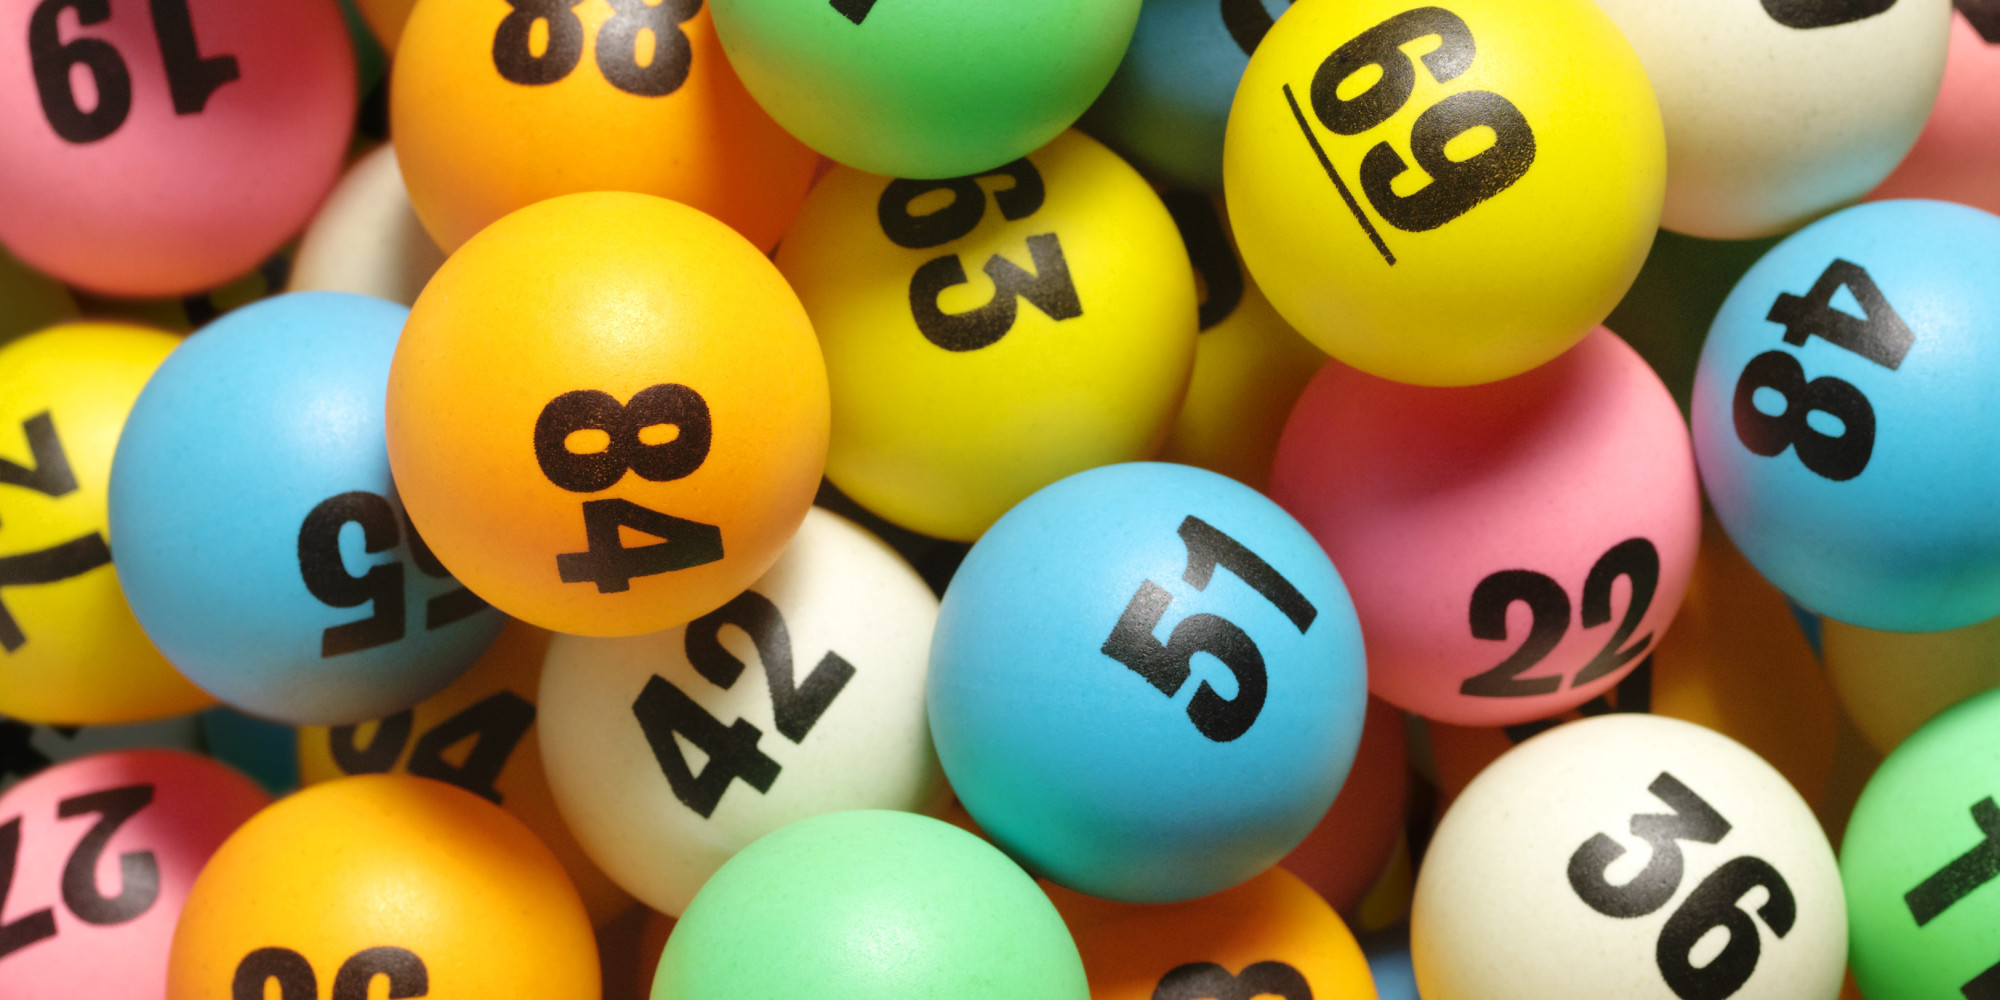 Next powerball drawing date and time in Melbourne